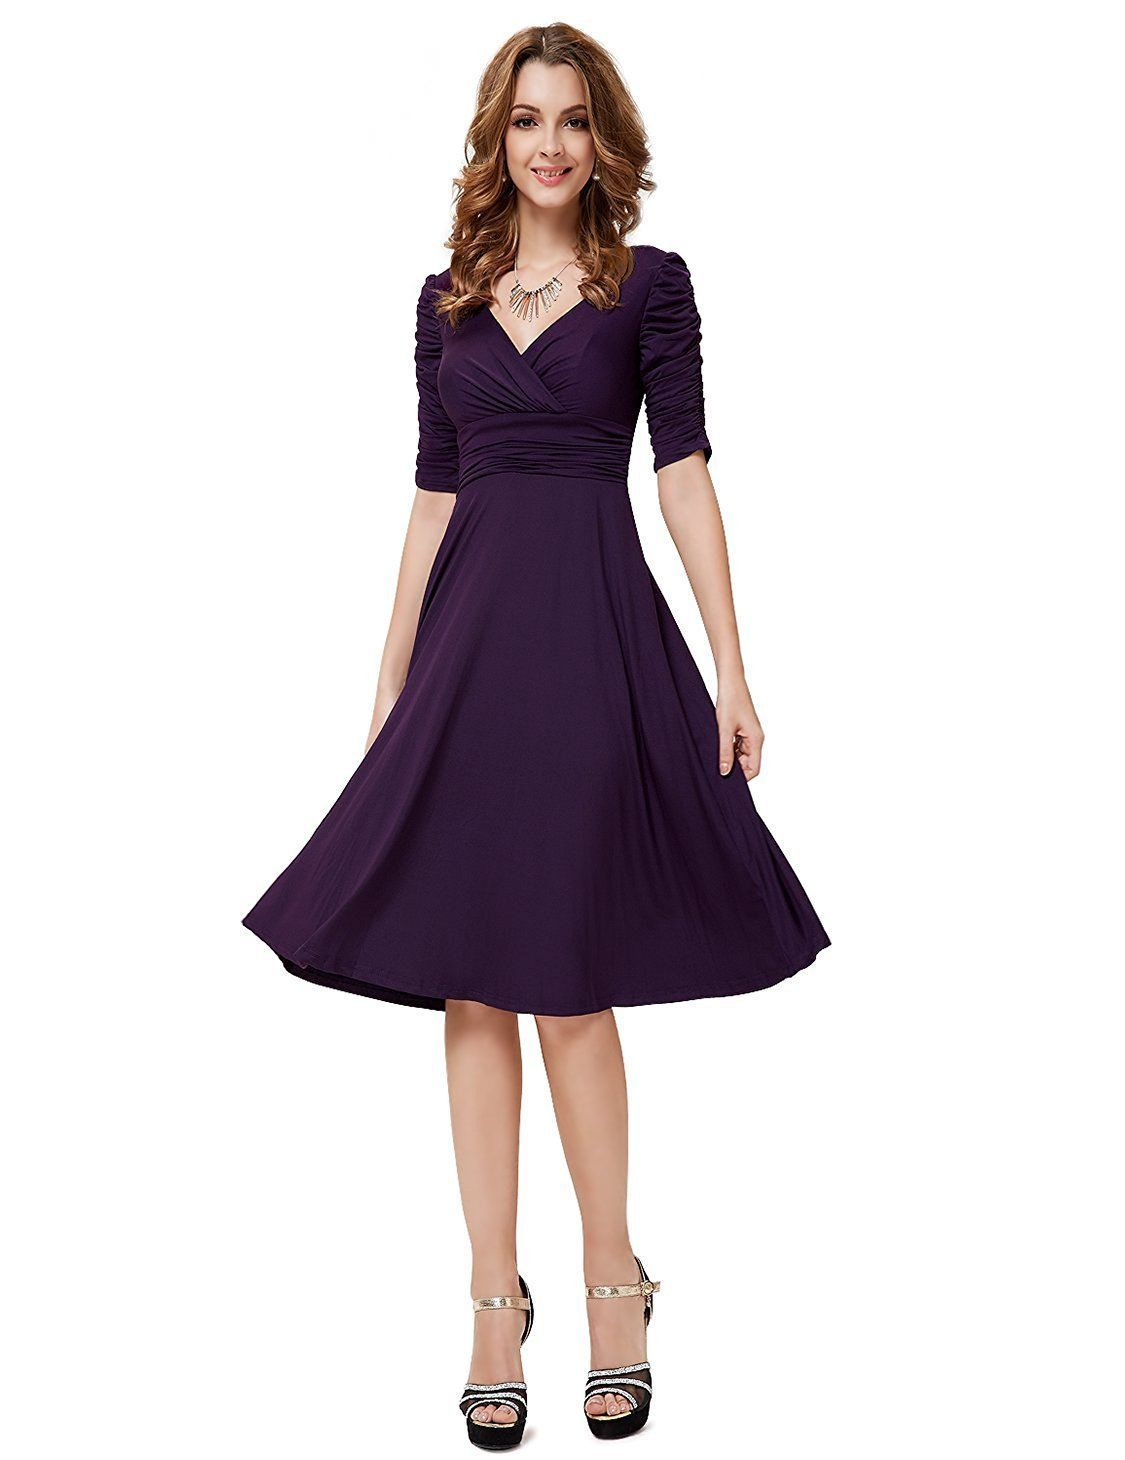 Short dress formal cocktail plus size products